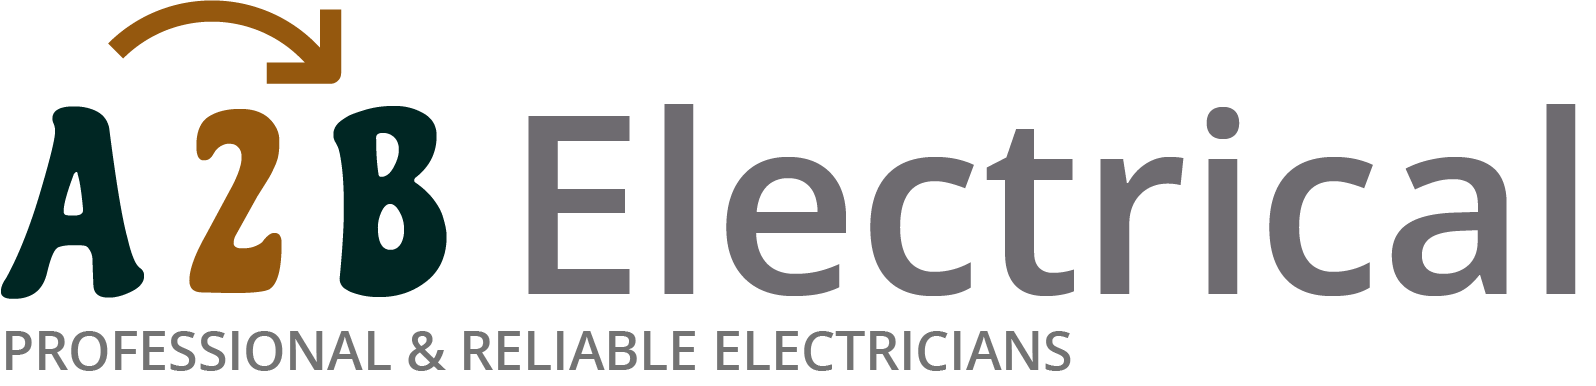 If you have electrical wiring problems in Edmonton, we can provide an electrician to have a look for you.